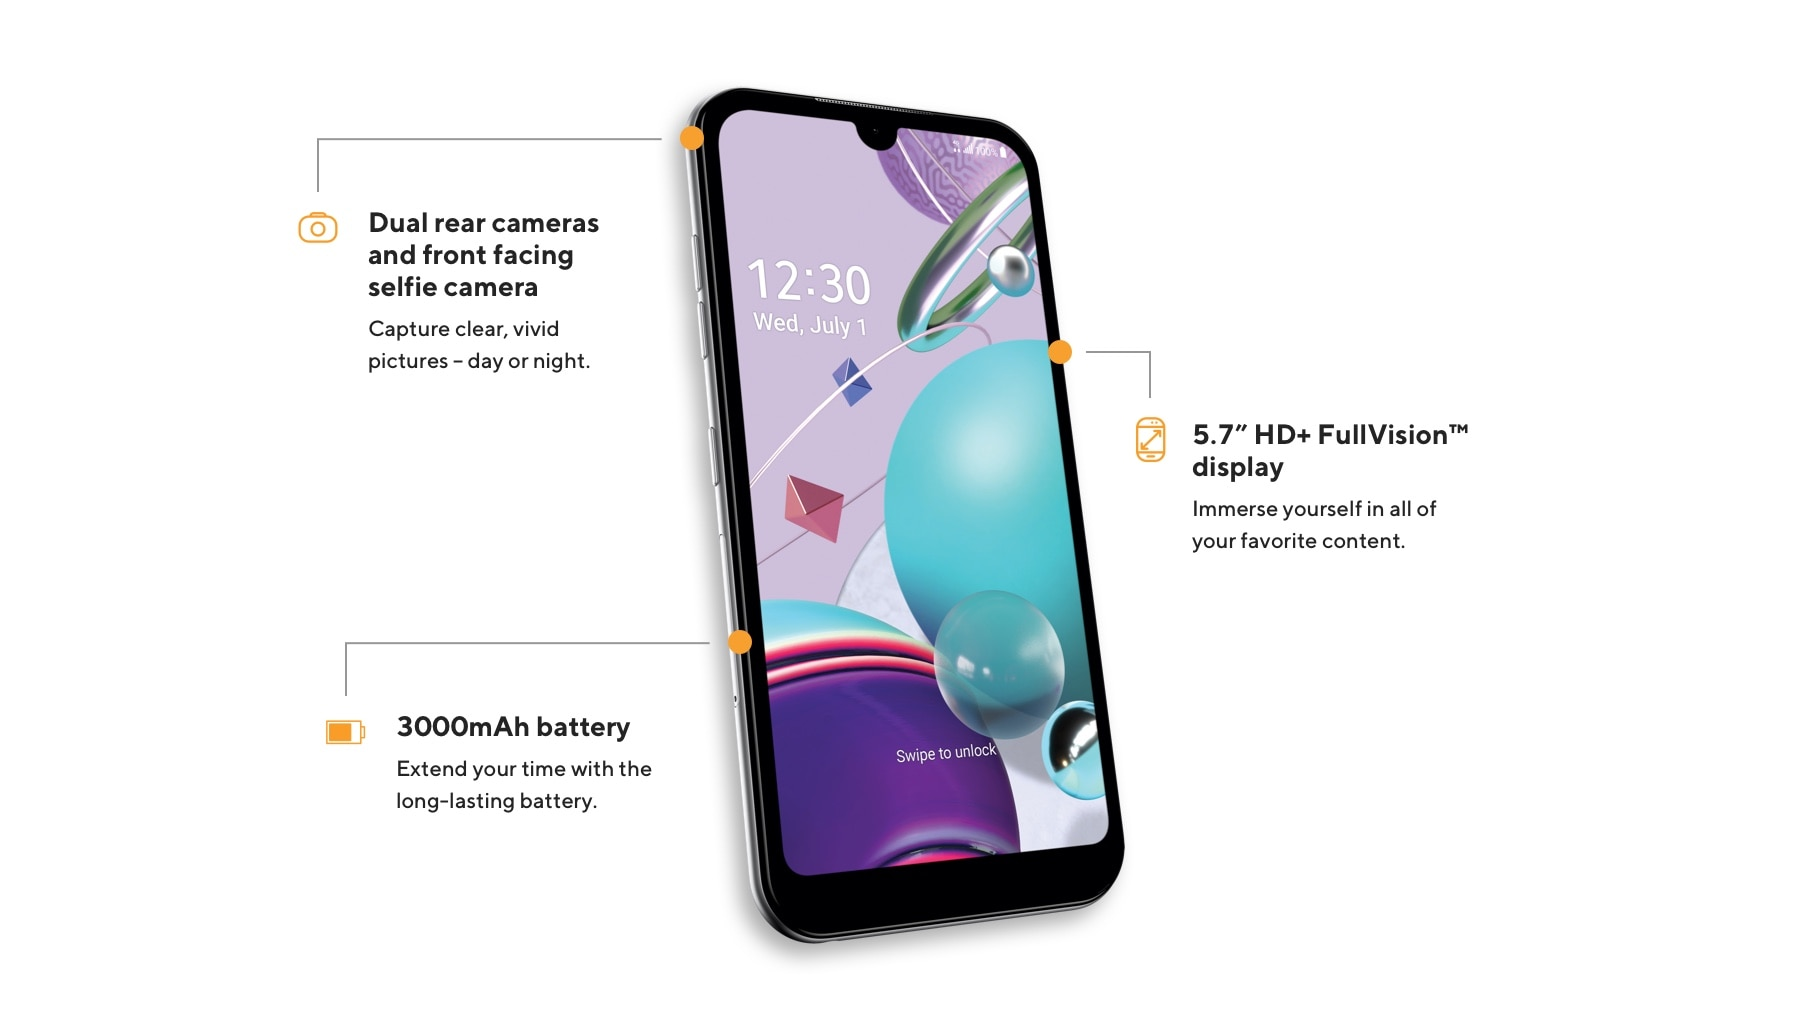 The LG Aristo 5 dual rear camera and front-facing selfie camera to capture clear, vivid pictures day or night, 5.7-inch HD Plus FullVision display to immerse yourself in all of your favorite content, and a 3000 mAh battery to extend your time.